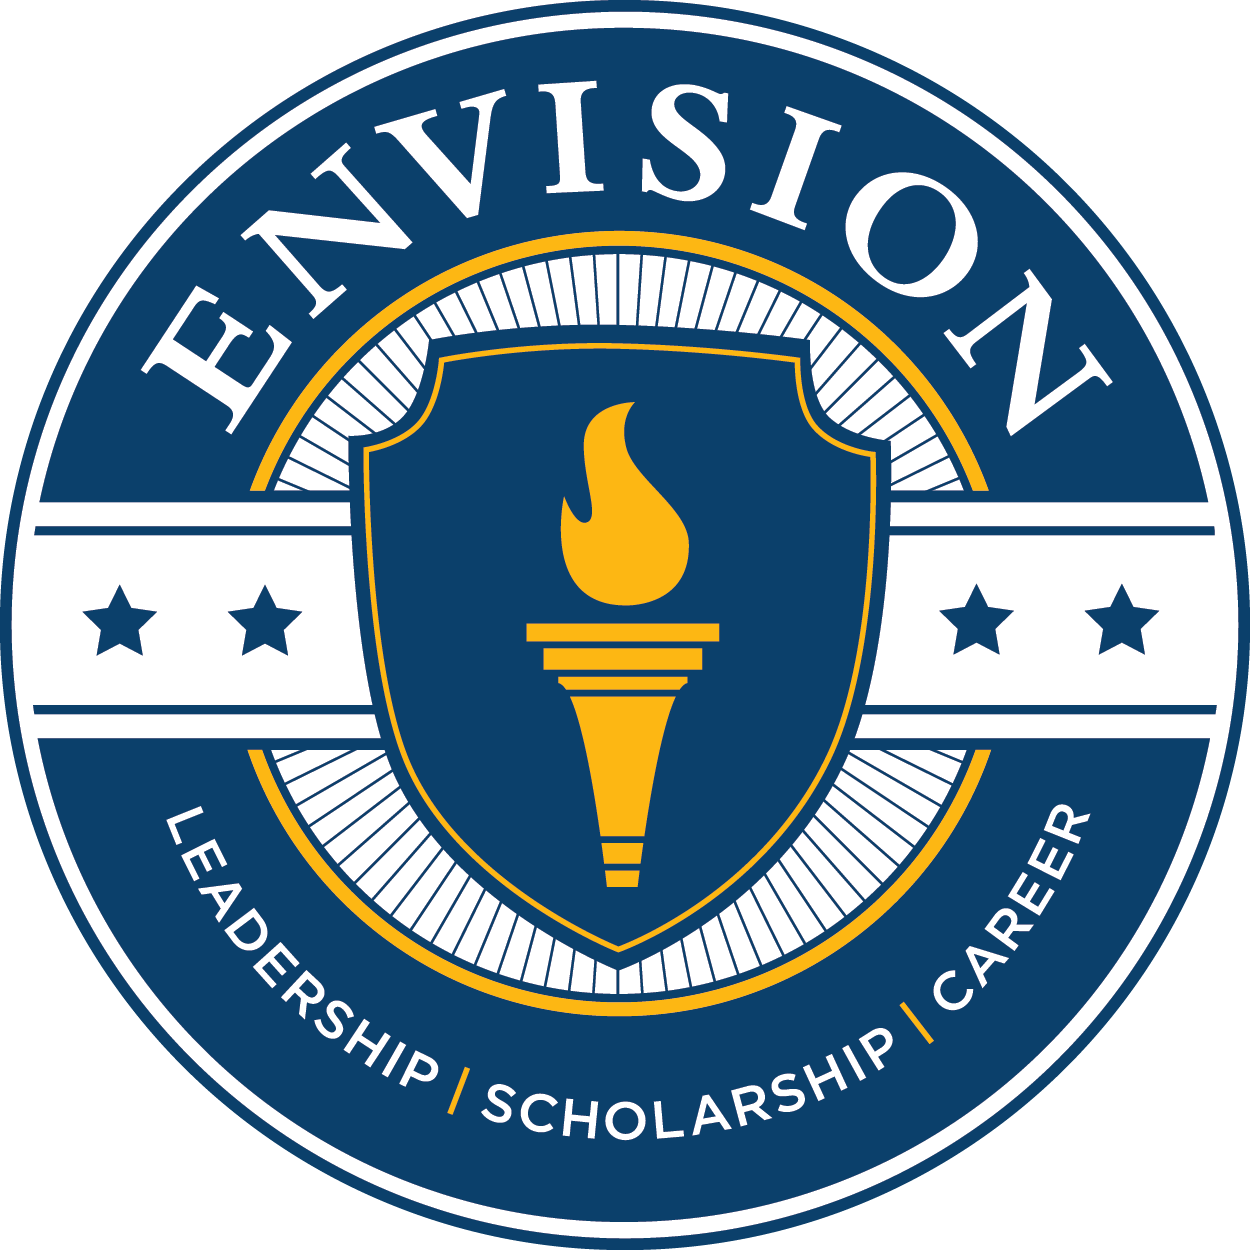 Stem School In Nj: Envision Announces The 2016 Envisionary Educator Award Winners